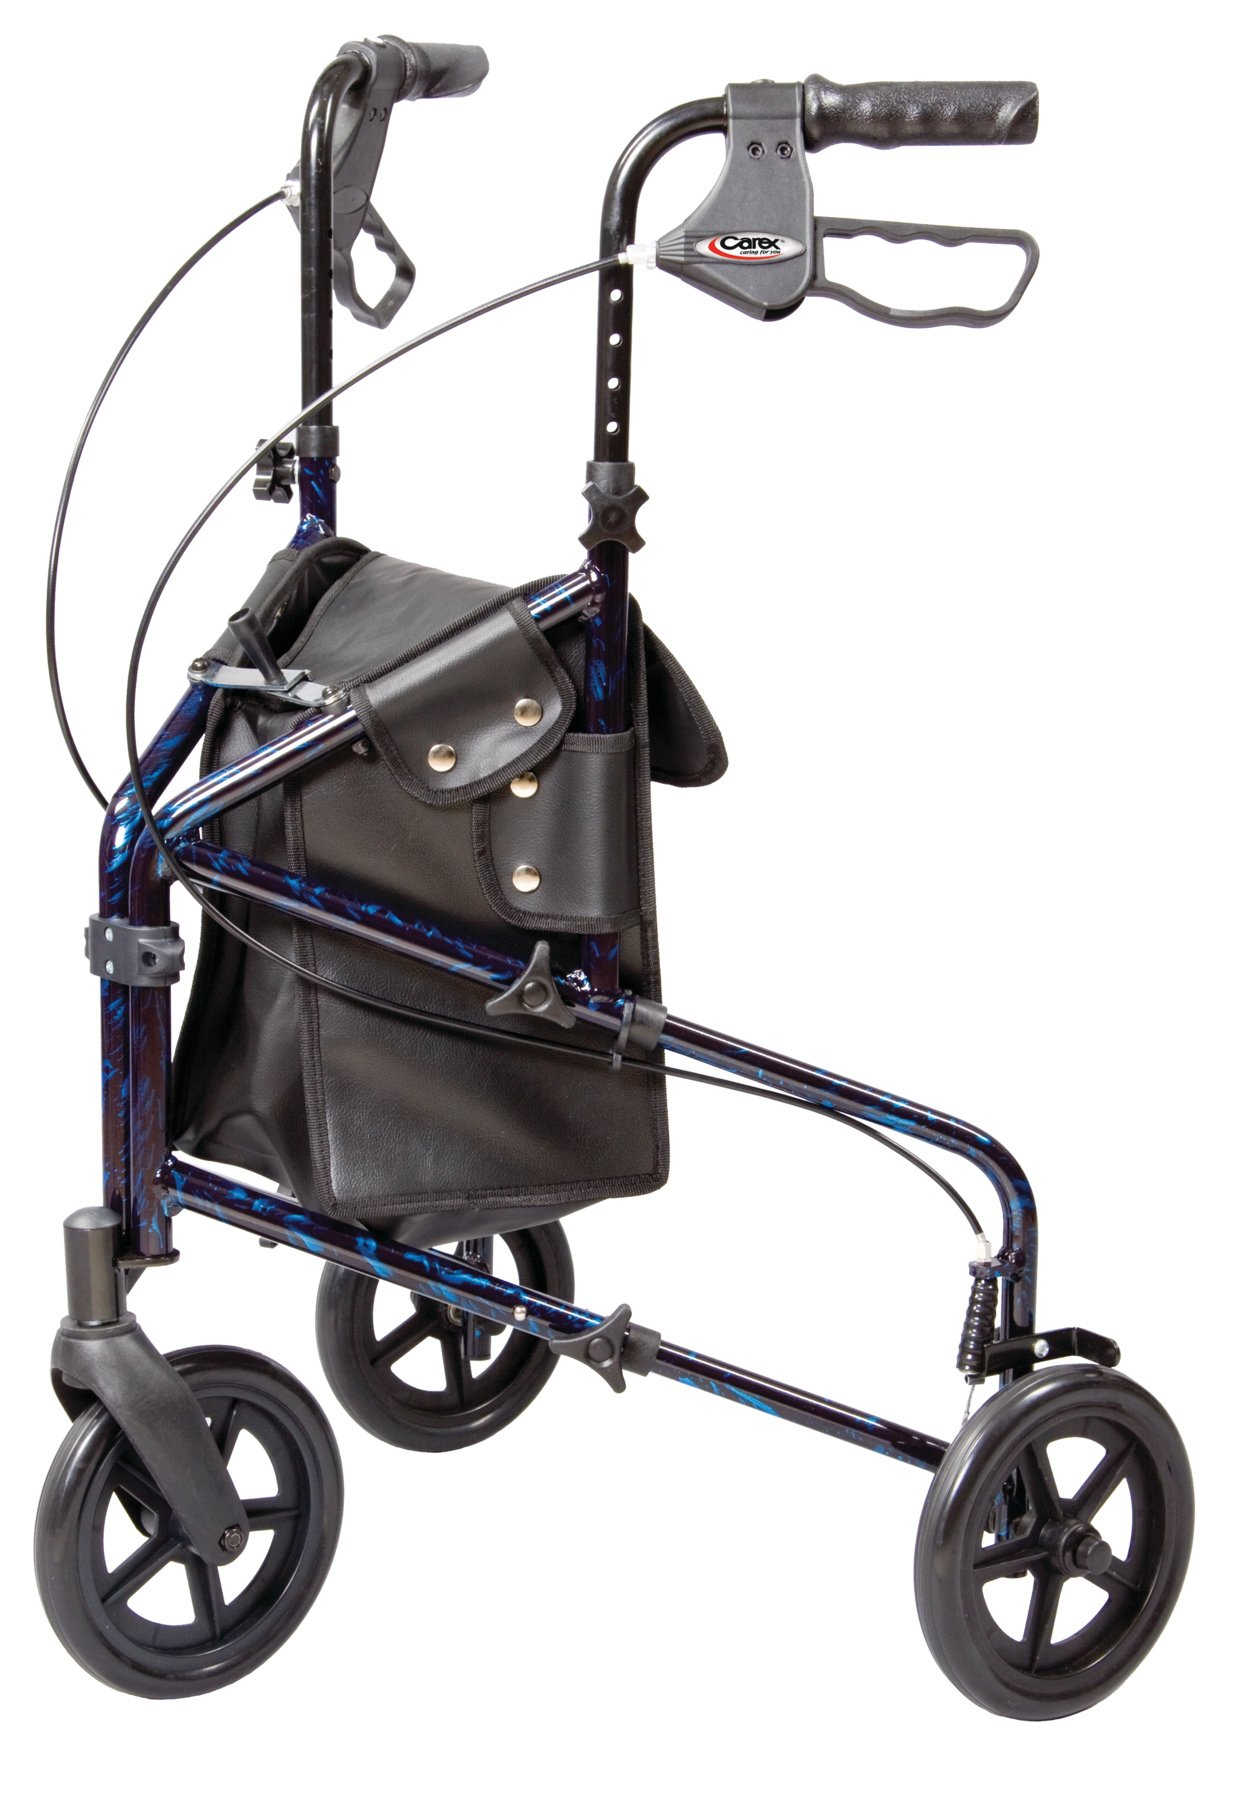 Carex 3 Wheel Walker for Seniors, Foldable, Rollator Walker with Three Wheels, Height Adjustable Handles by Carex Health Brands